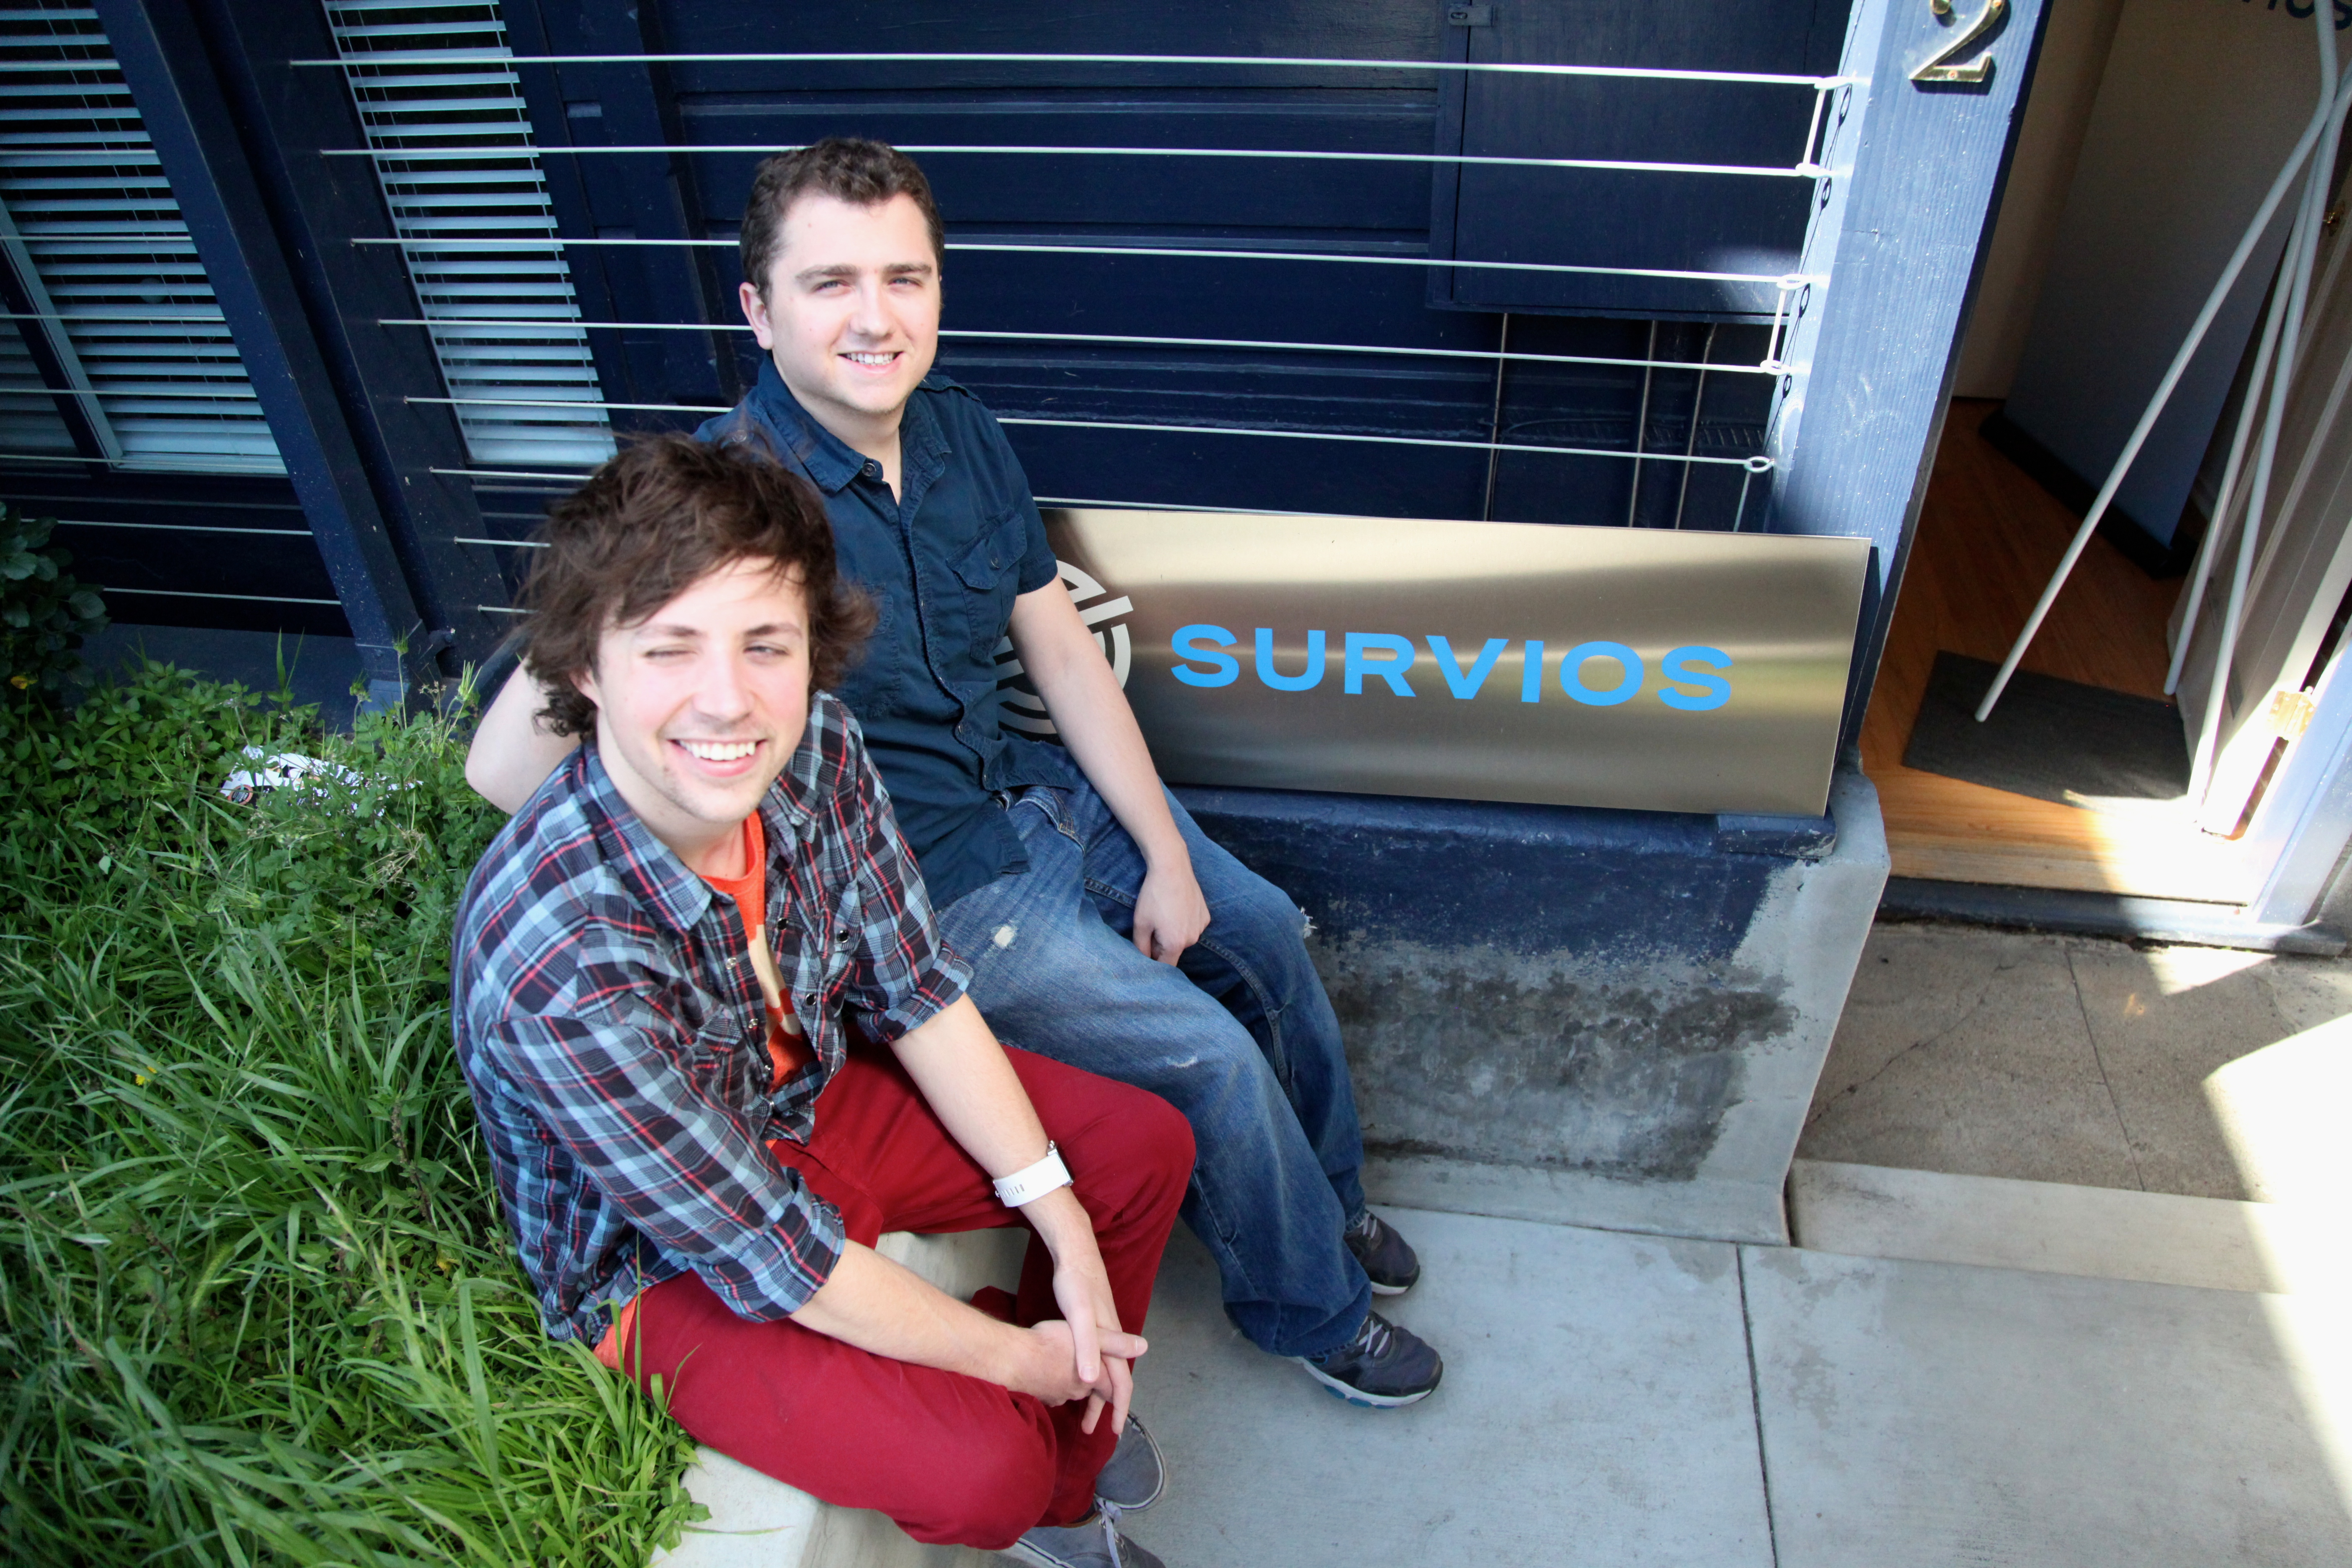 Survios founders James Illiff and Nathan Burba. Photo by Signe Brewster.